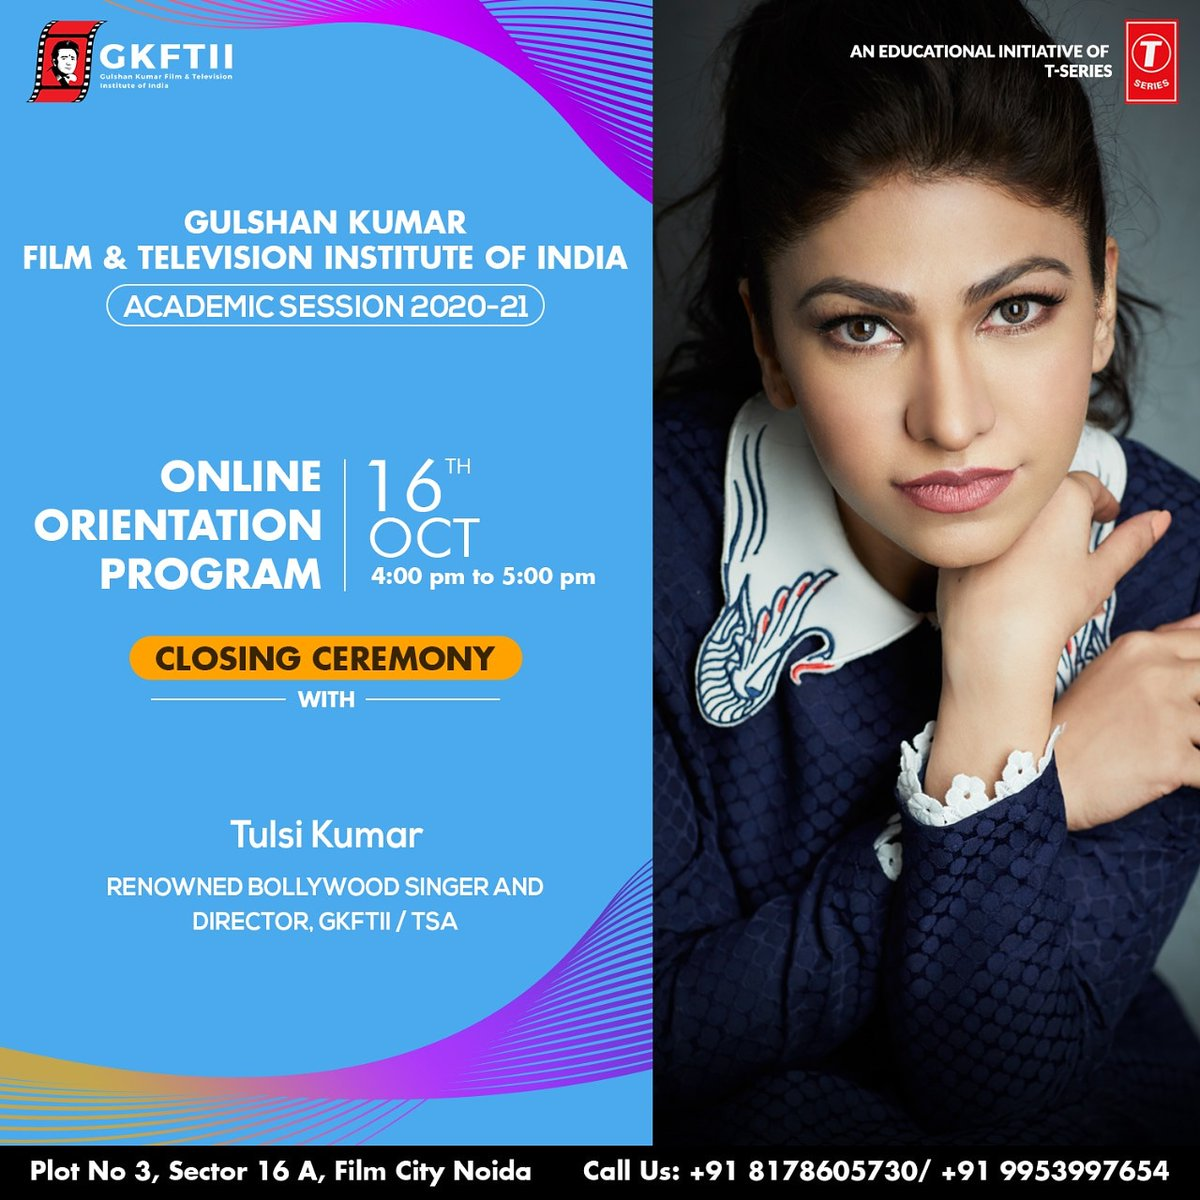 #GKFTII feels happy to announce the #closingceremony of its weeklong #orientationprogram on 16th October. On this special occasion, the immensely talented chartbuster queen and the director of GKFTII/TSA #TulsiKumar is coming live to interact with the students. @TulsikumarTK https://t.co/RdBqJx9Zsj